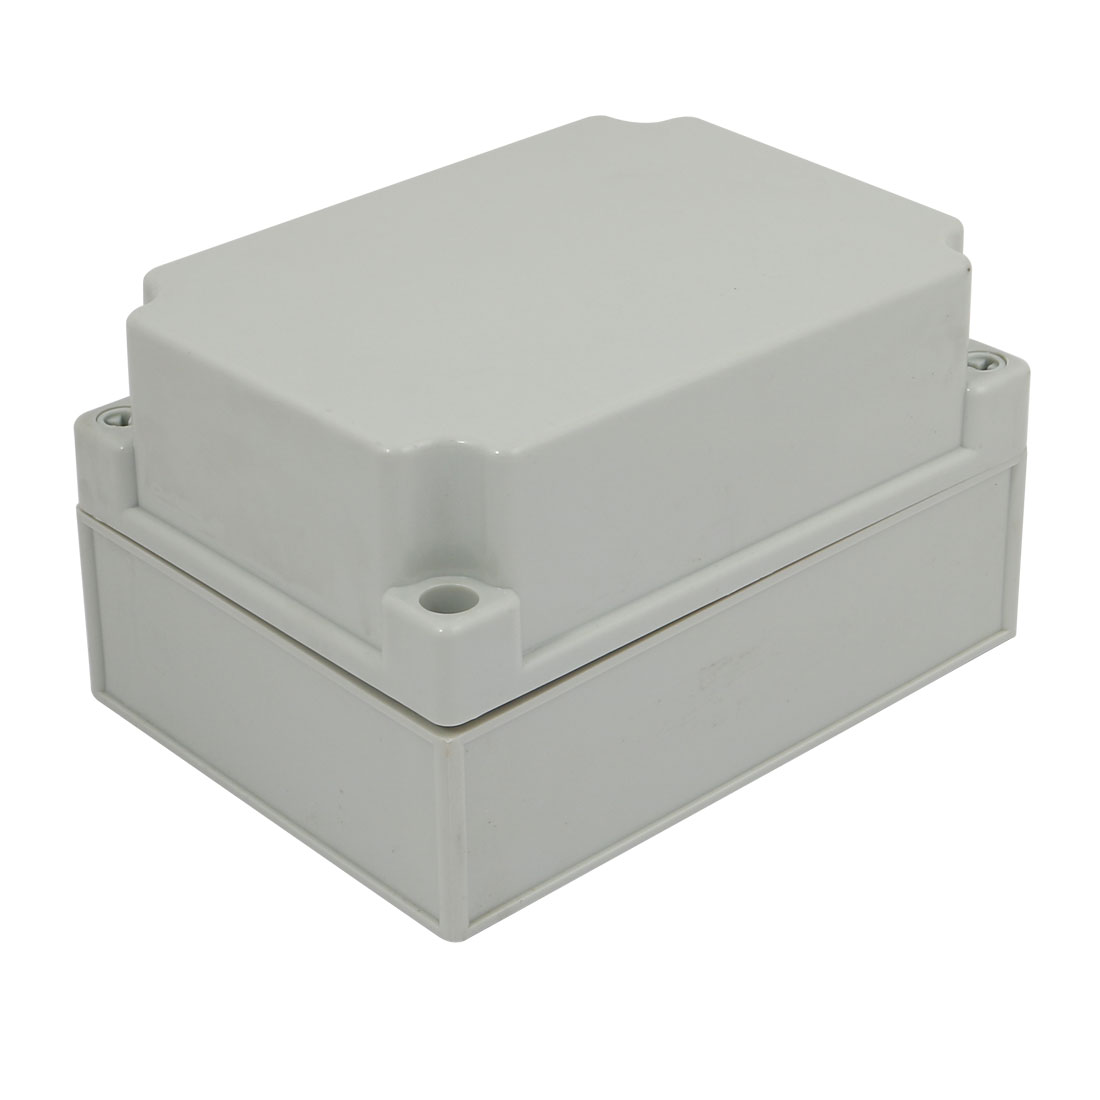 175mmx125mmx100mm Electronic ABS Plastic DIY Junction Box Enclosure Case Gray